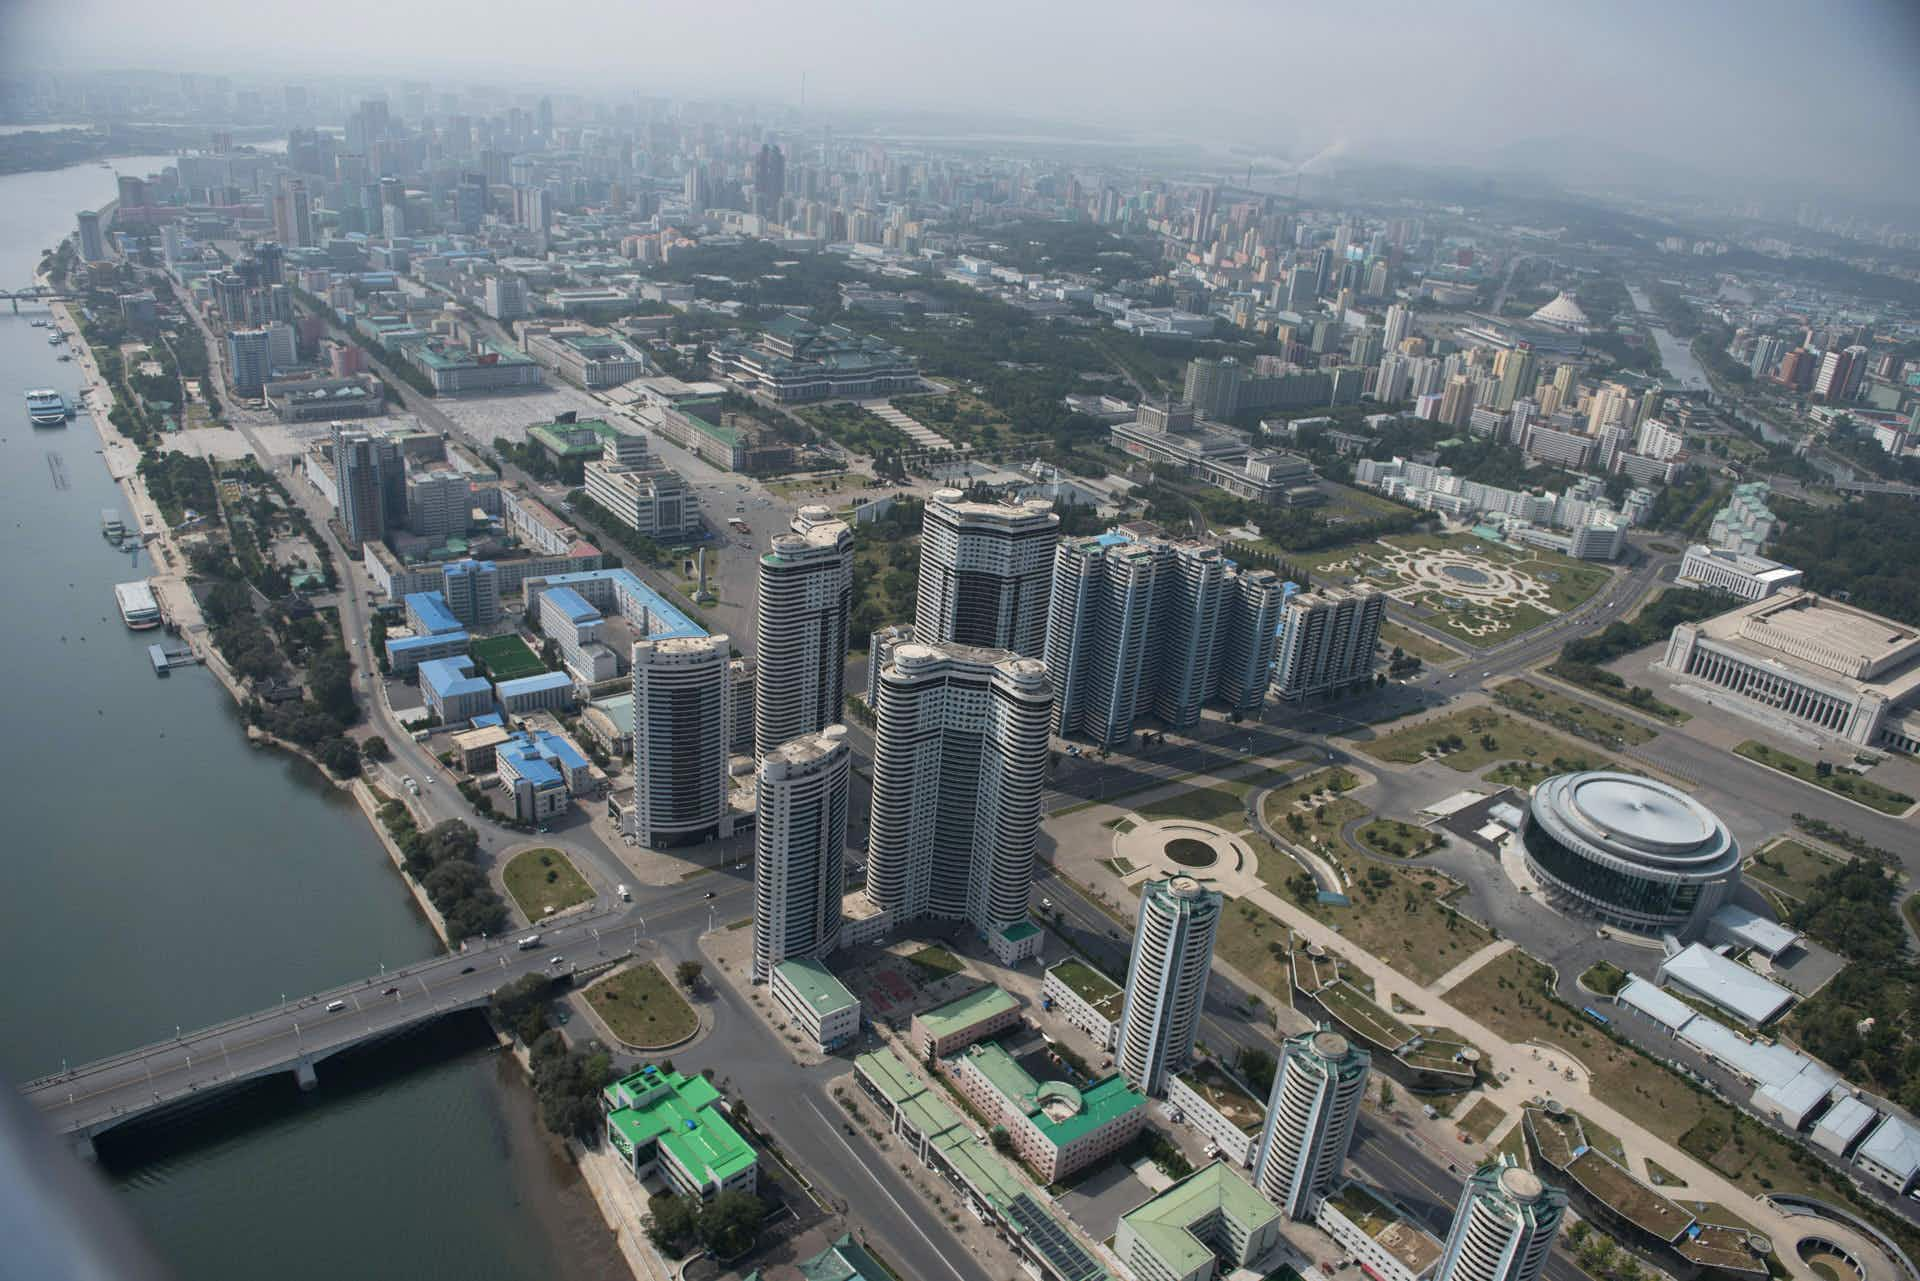 See North Korea's capital city from above in this amazing exclusive video